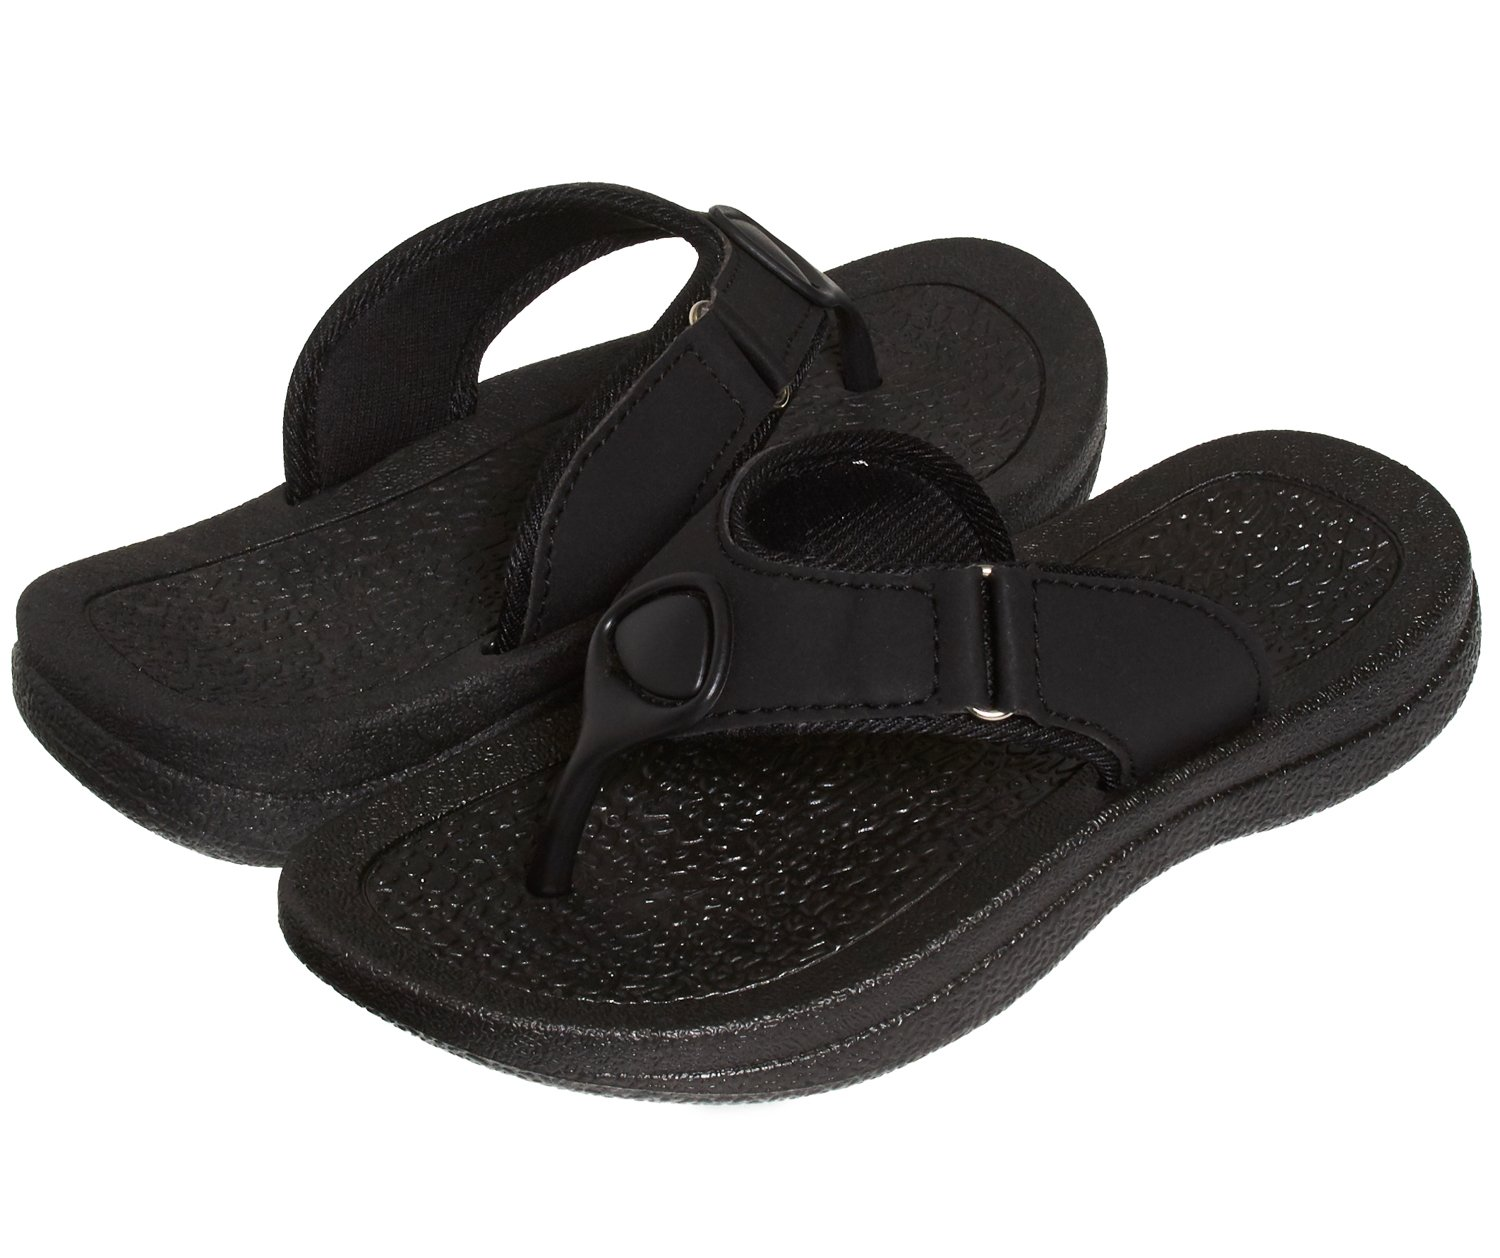 f0ebd3e58 Get Quotations · Skysole Boys Rugged PU Ring Thong Strap Sandals (See More  Colors and Sizes)